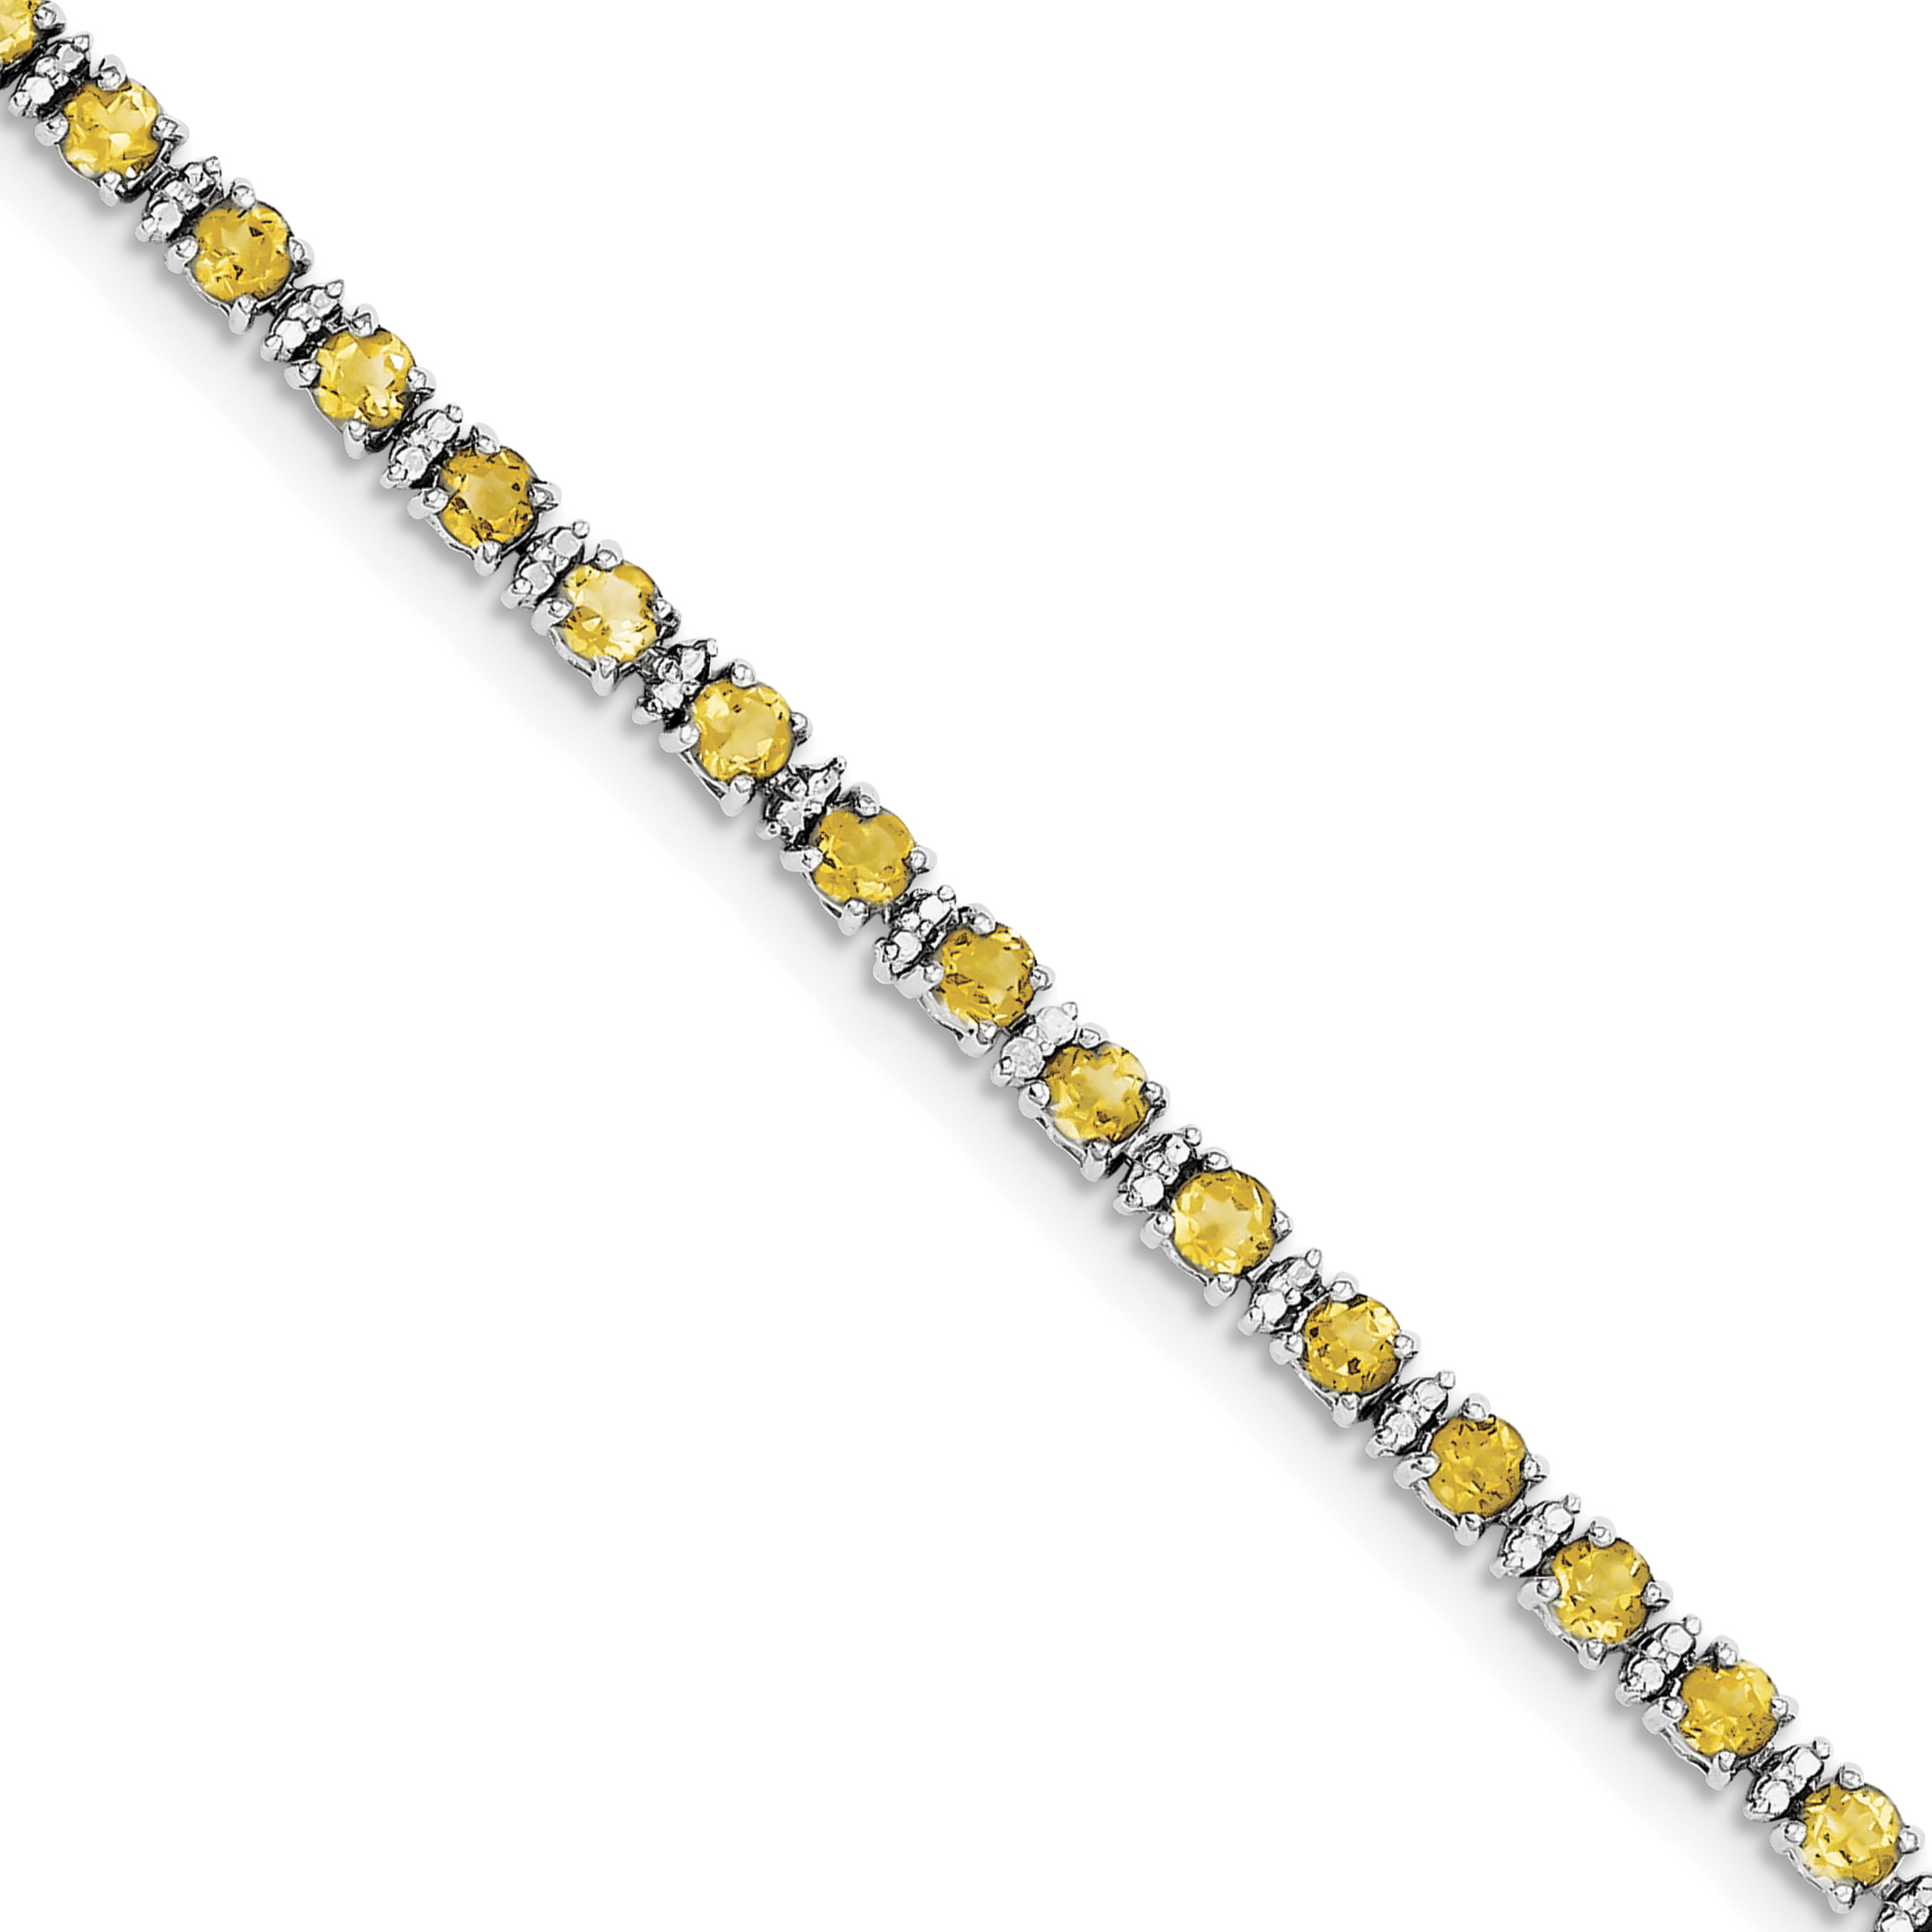 925 Sterling Silver Rhodium-plated Citrine and Diamond Bracelet by